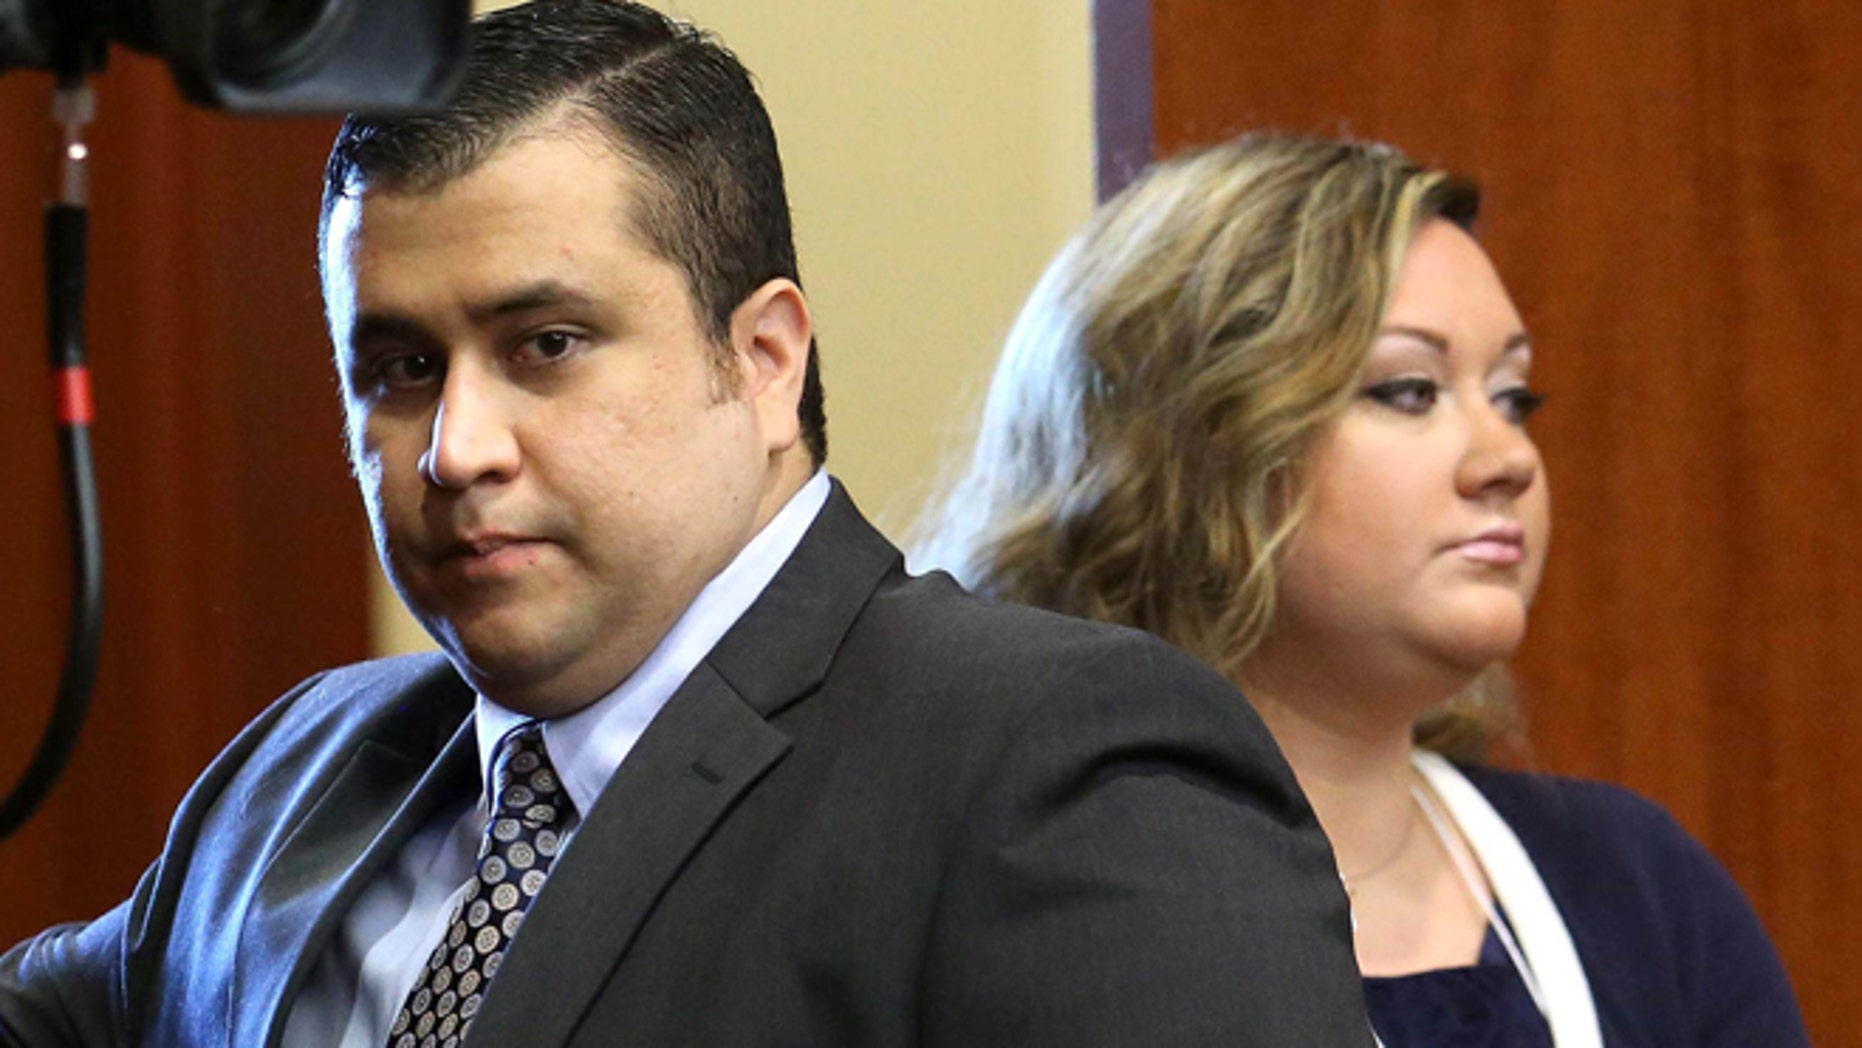 George Zimmerman with his wife Shellie in Sanford, Fla. in June 24, 2013.